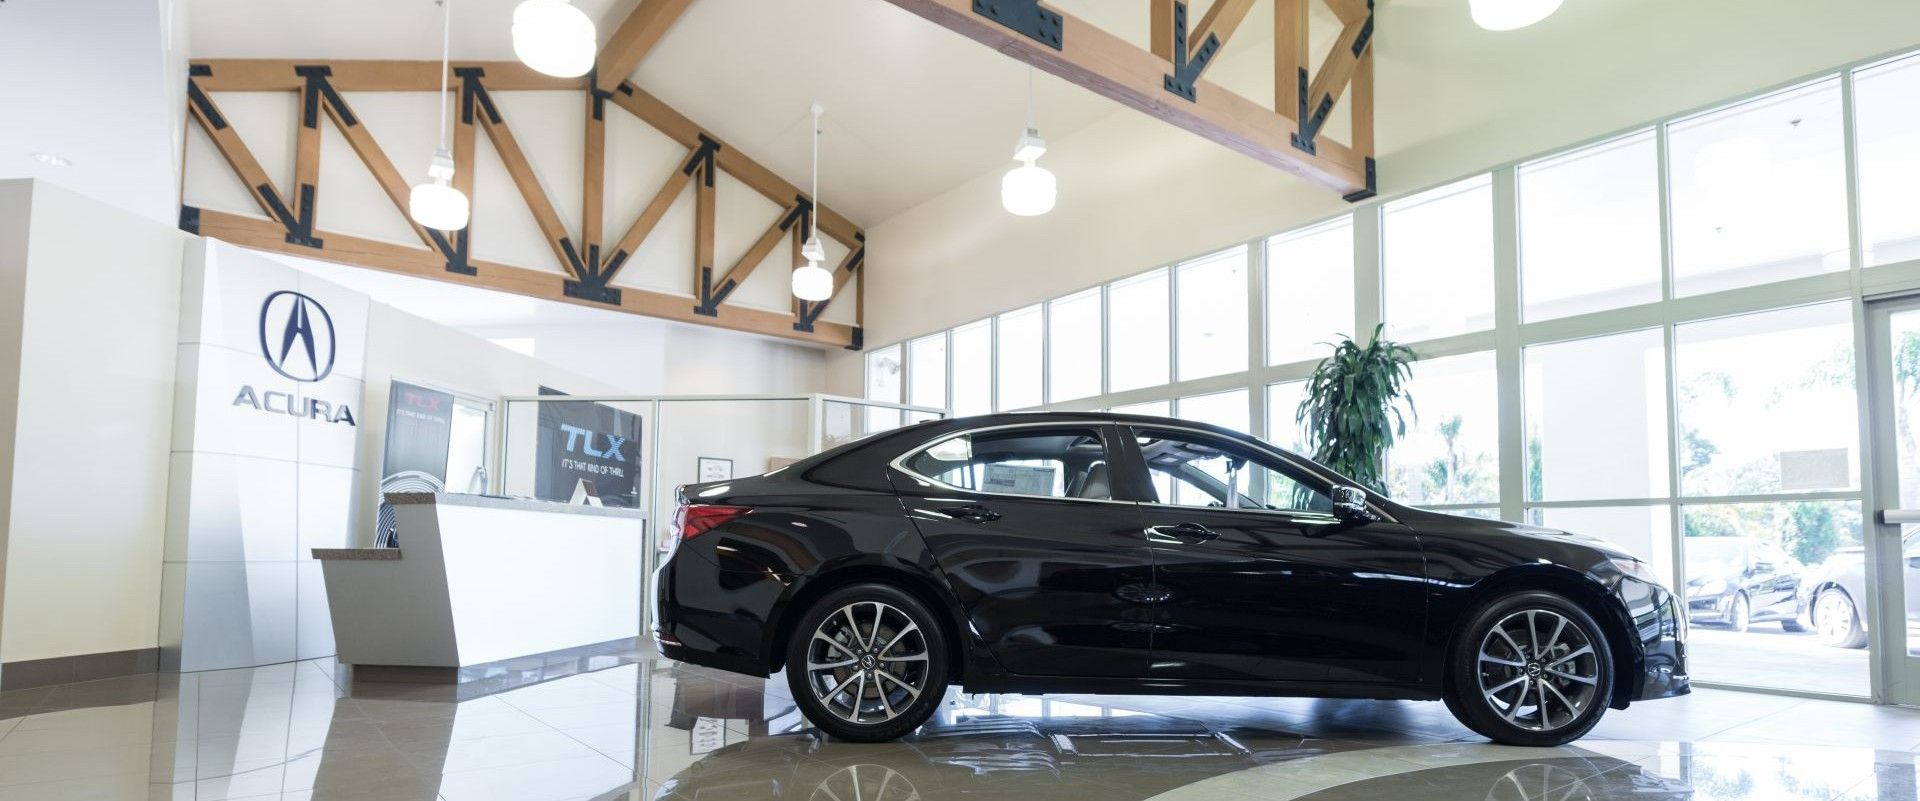 Enjoy Great Value with a Certified PreOwned Luxury